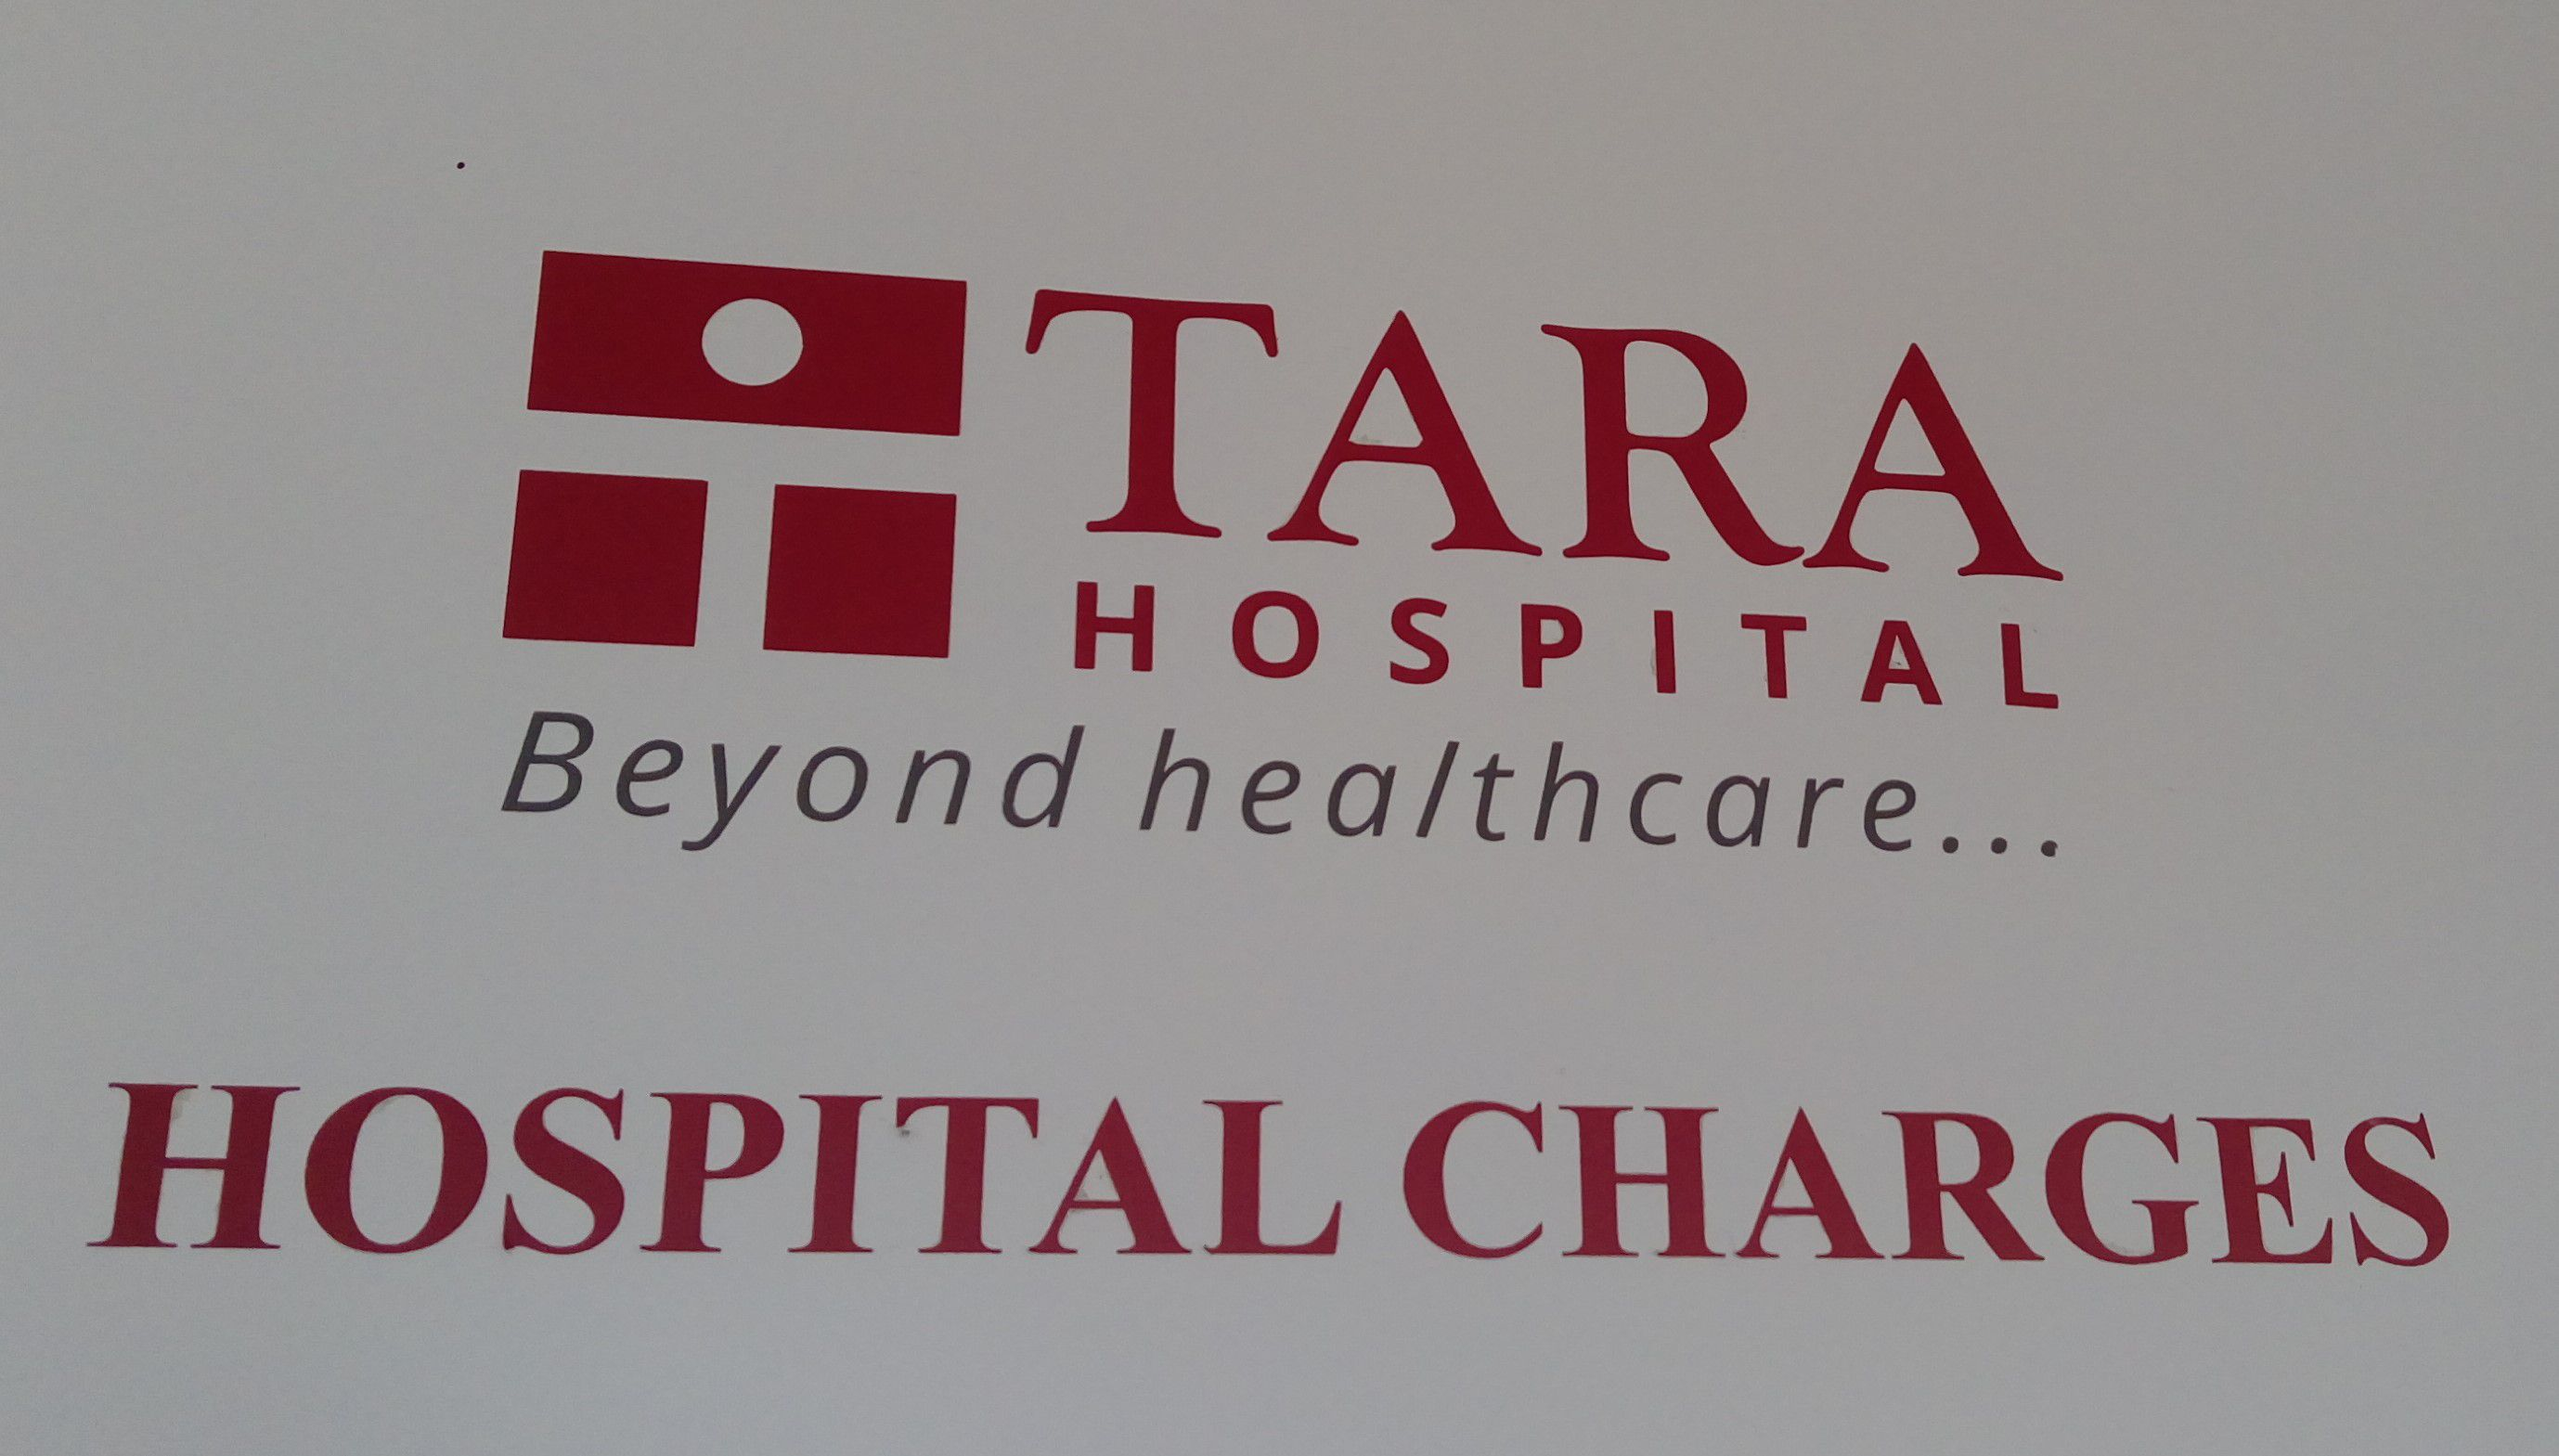 Tara Hospitals display image